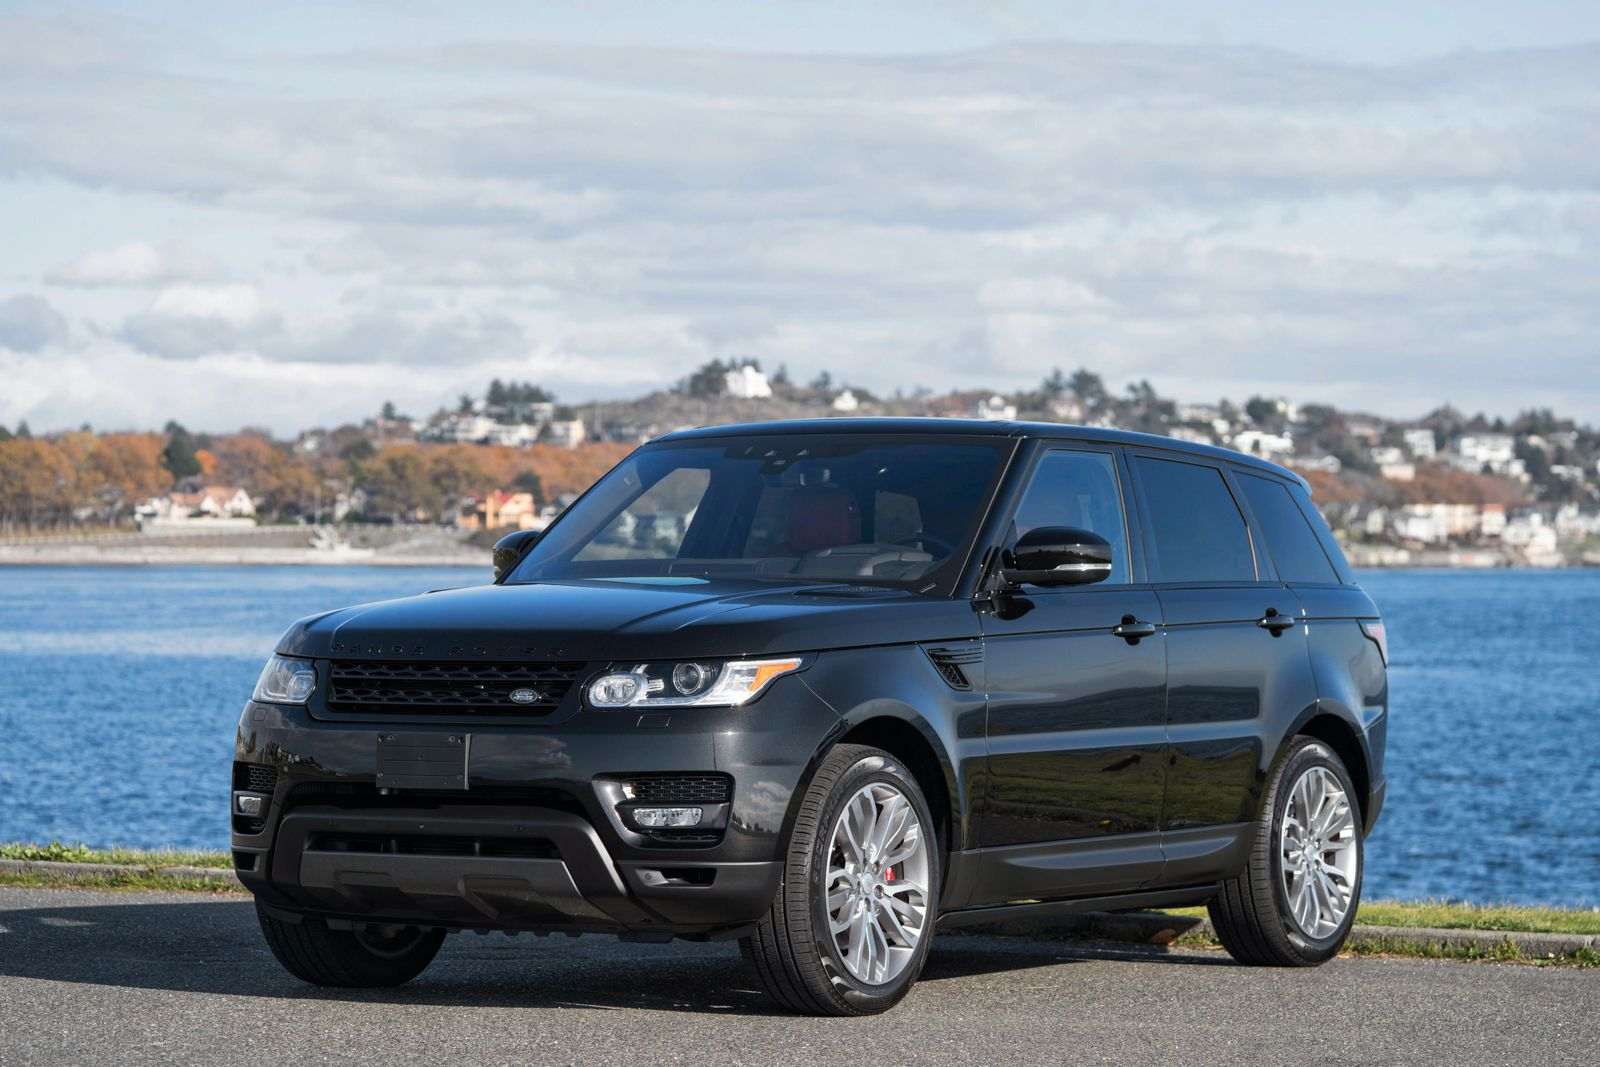 2017 Range Rover Sport Supercharged for sale Range rover